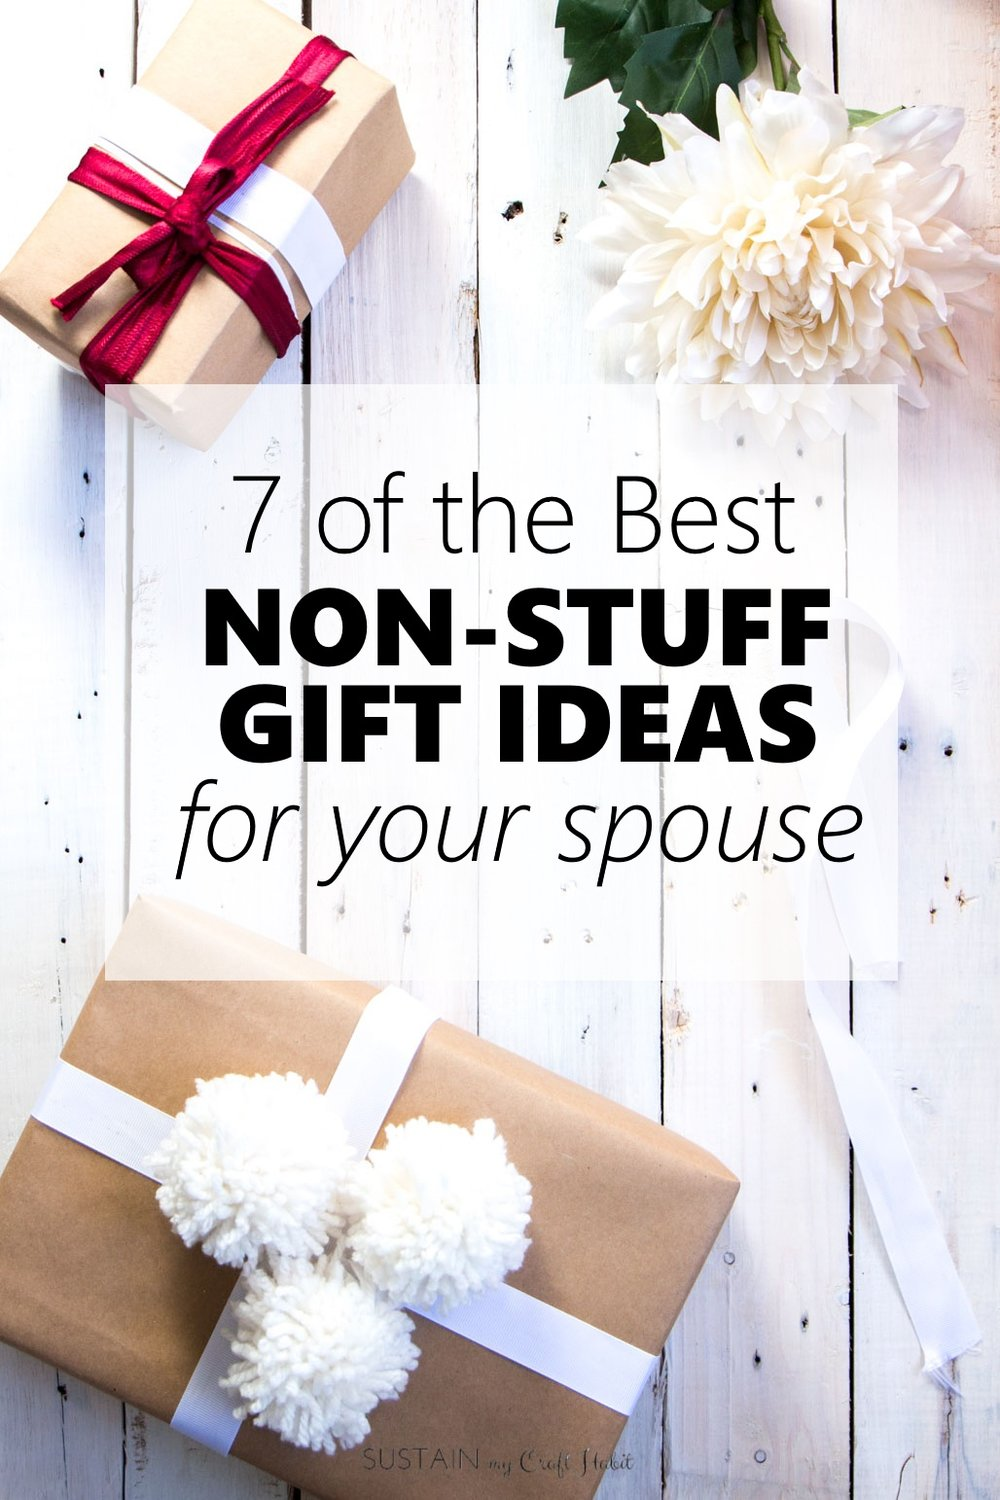 Best non-stuff gift ideas for your spouse | Thoughtful gifts for husband, boyfriend, girlfriend or wife | Meaningful gifts for men and women | Christmas gift ideas for the family | Mother's Day, Father's Day gift ideas